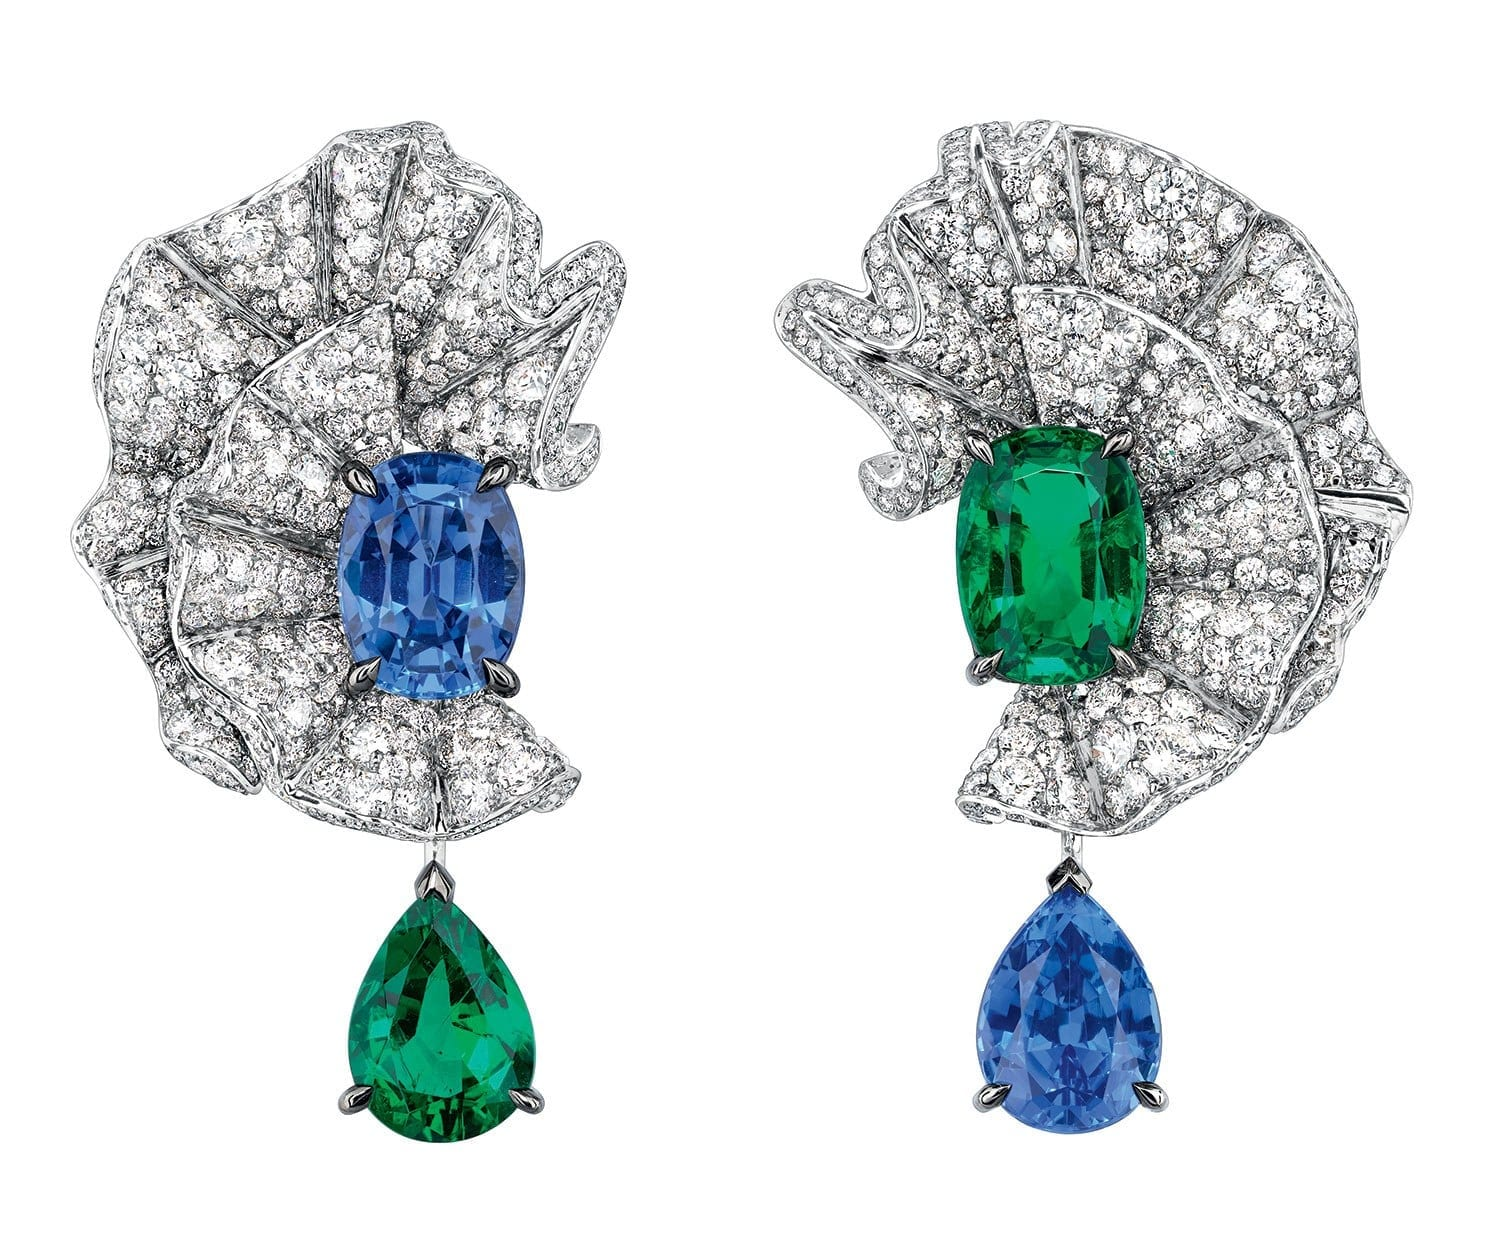 victoire de castellane dior couture jewelry 08 - Cash Your Luxury by Silvia Ababe  Get paid now for your designer items!